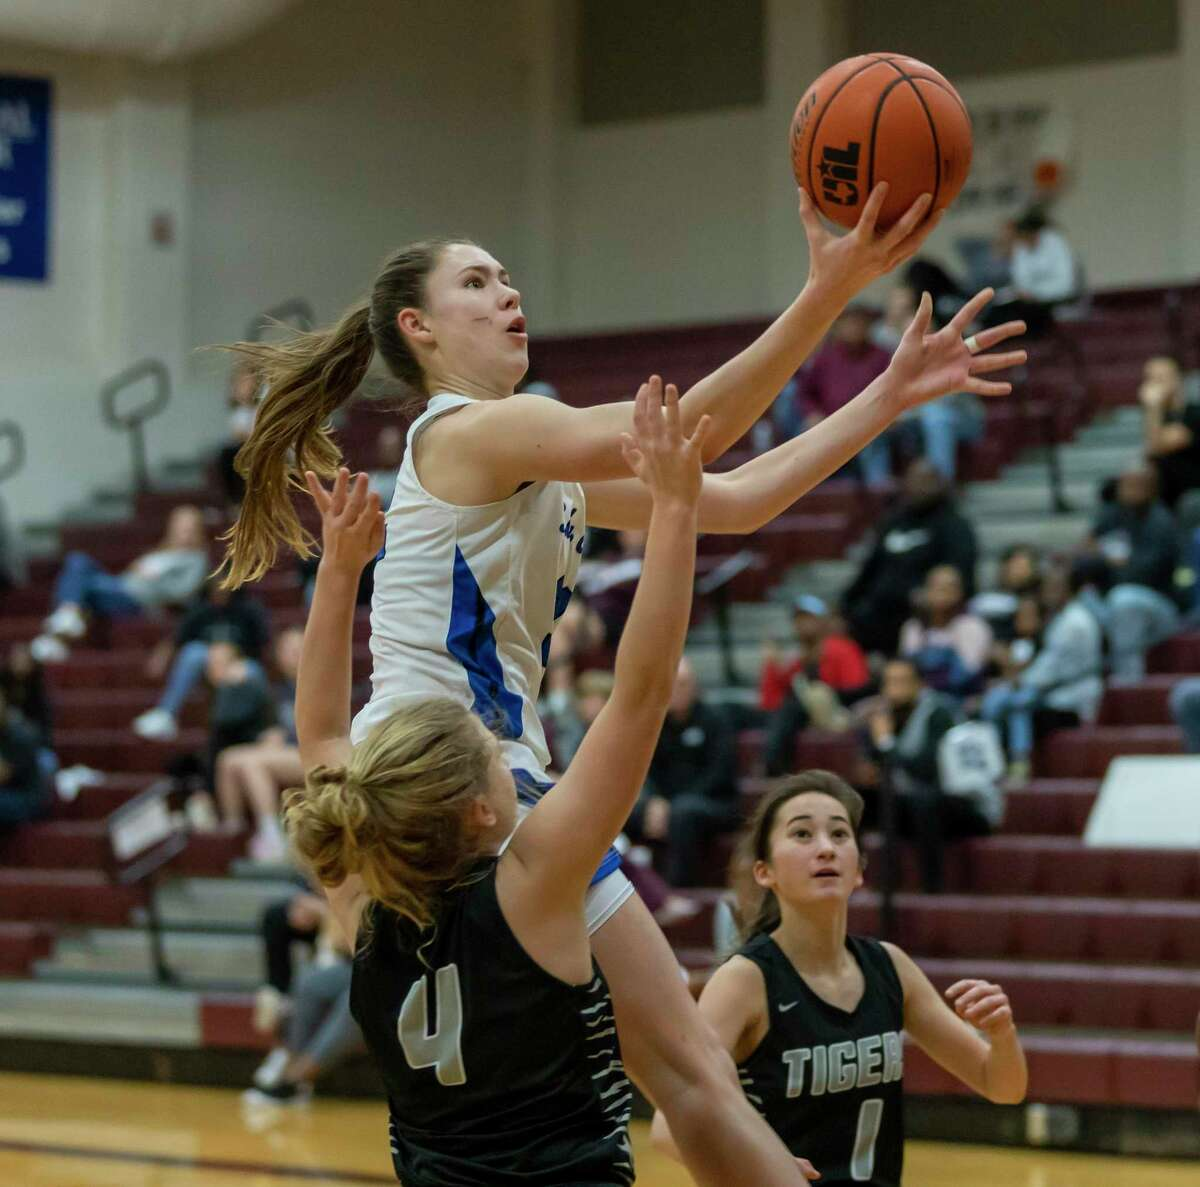 New Caney power forward Tori Garza (32) jumps for the basket while under pressure from A&M consolidated guard Claire Sisco (4) and A&M Consolidated guard Sarah Hathorn (1) in a Region III-5A bi-district girls basketball playoff during the second half at Magnolia High School in Magnolia, Tuesday, Feb. 18, 2020.